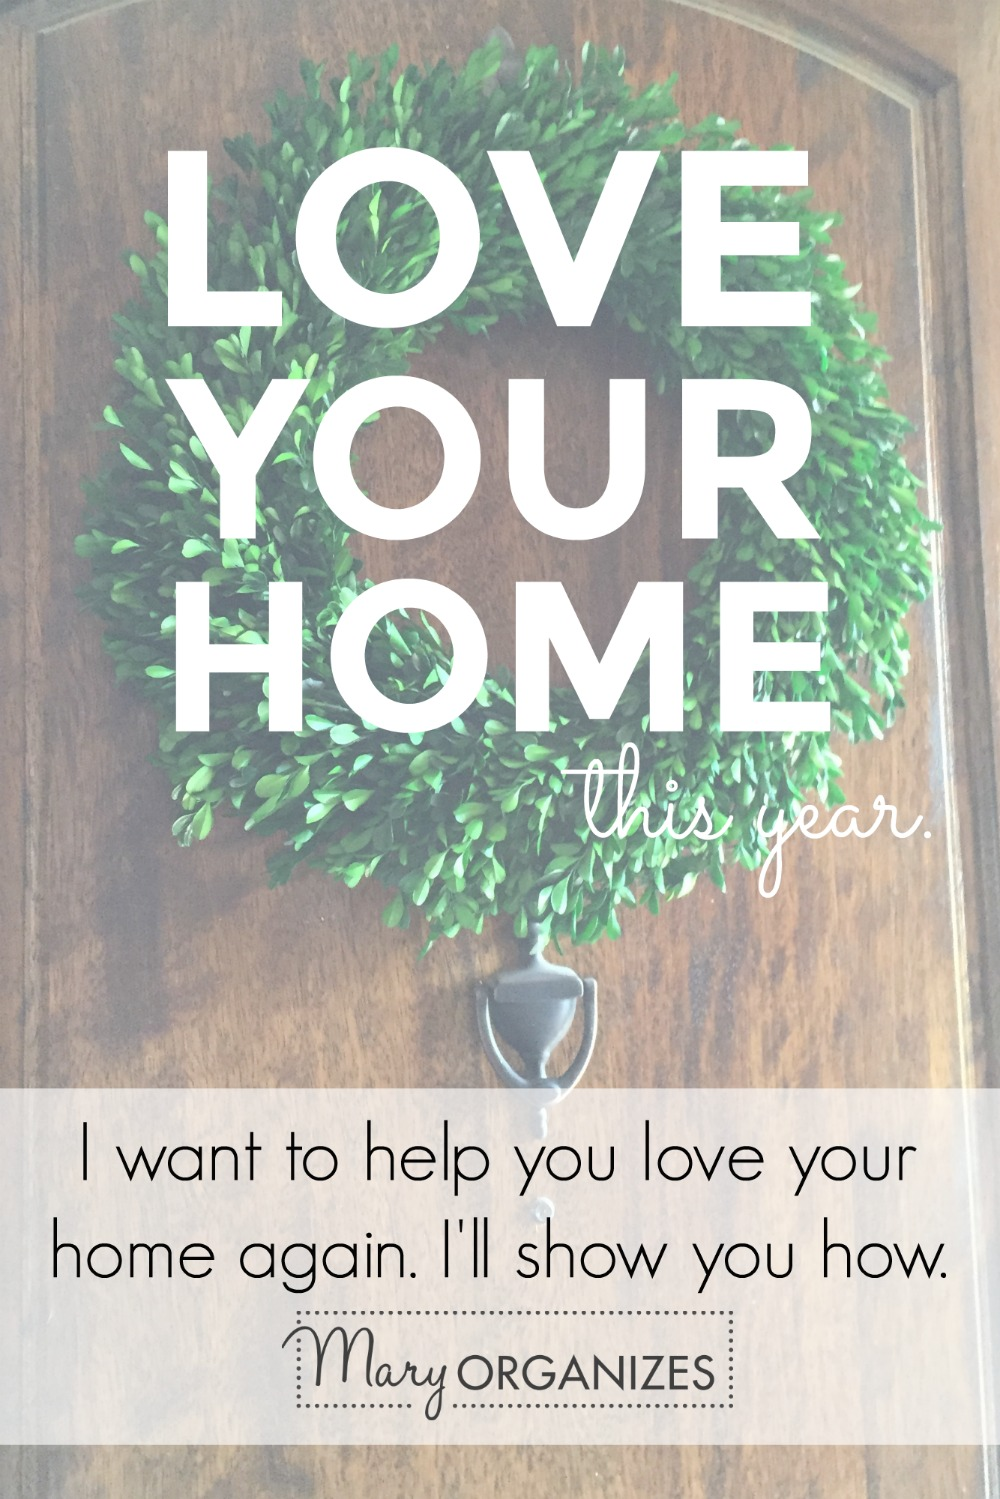 Love Your Home this year at Mary ORGANIZES -V